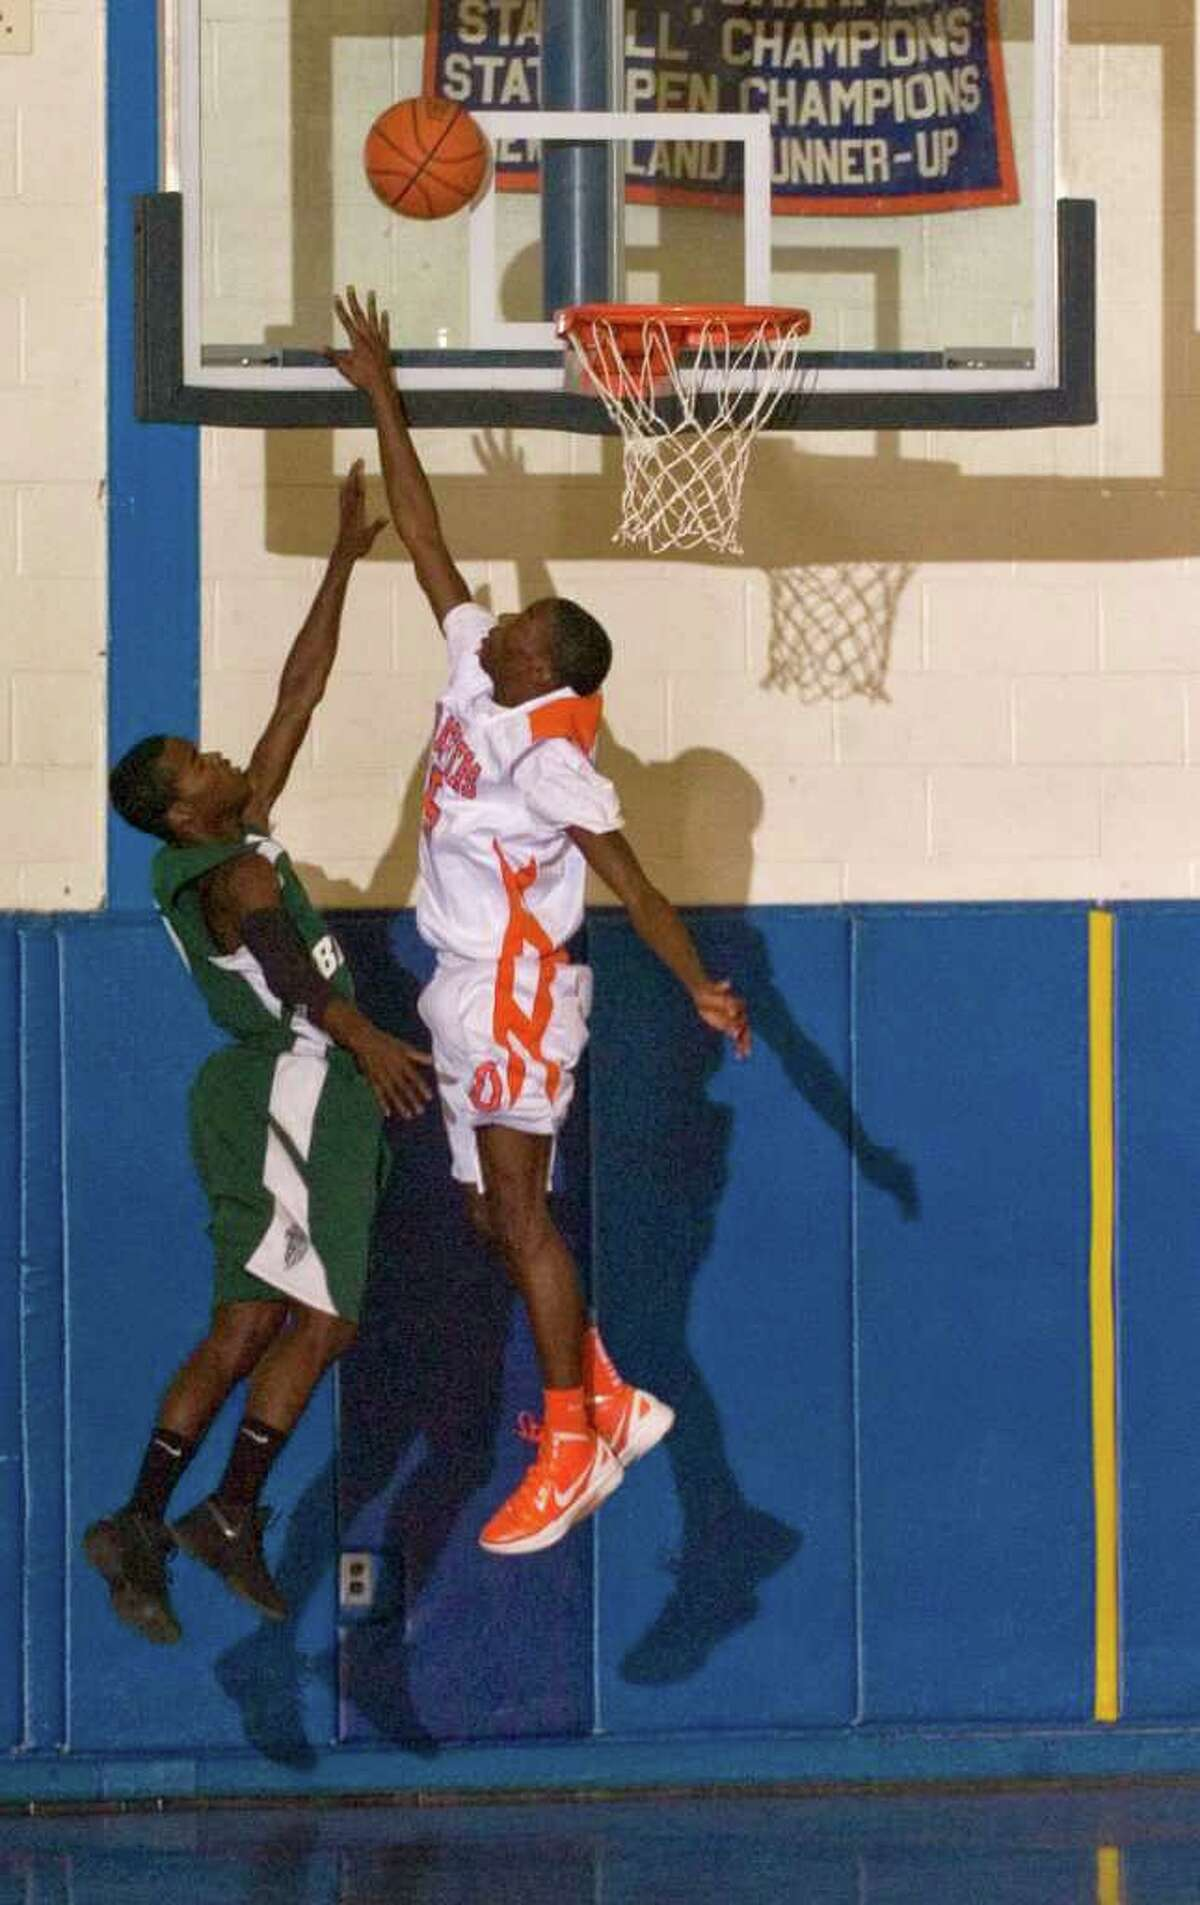 Bassick's Jerond Rogers shoots over Danbury's C.J. White during their game at Danbury High School on Tuesday, Jan. 3, 2012. Danbury won 86-85 in overtime.